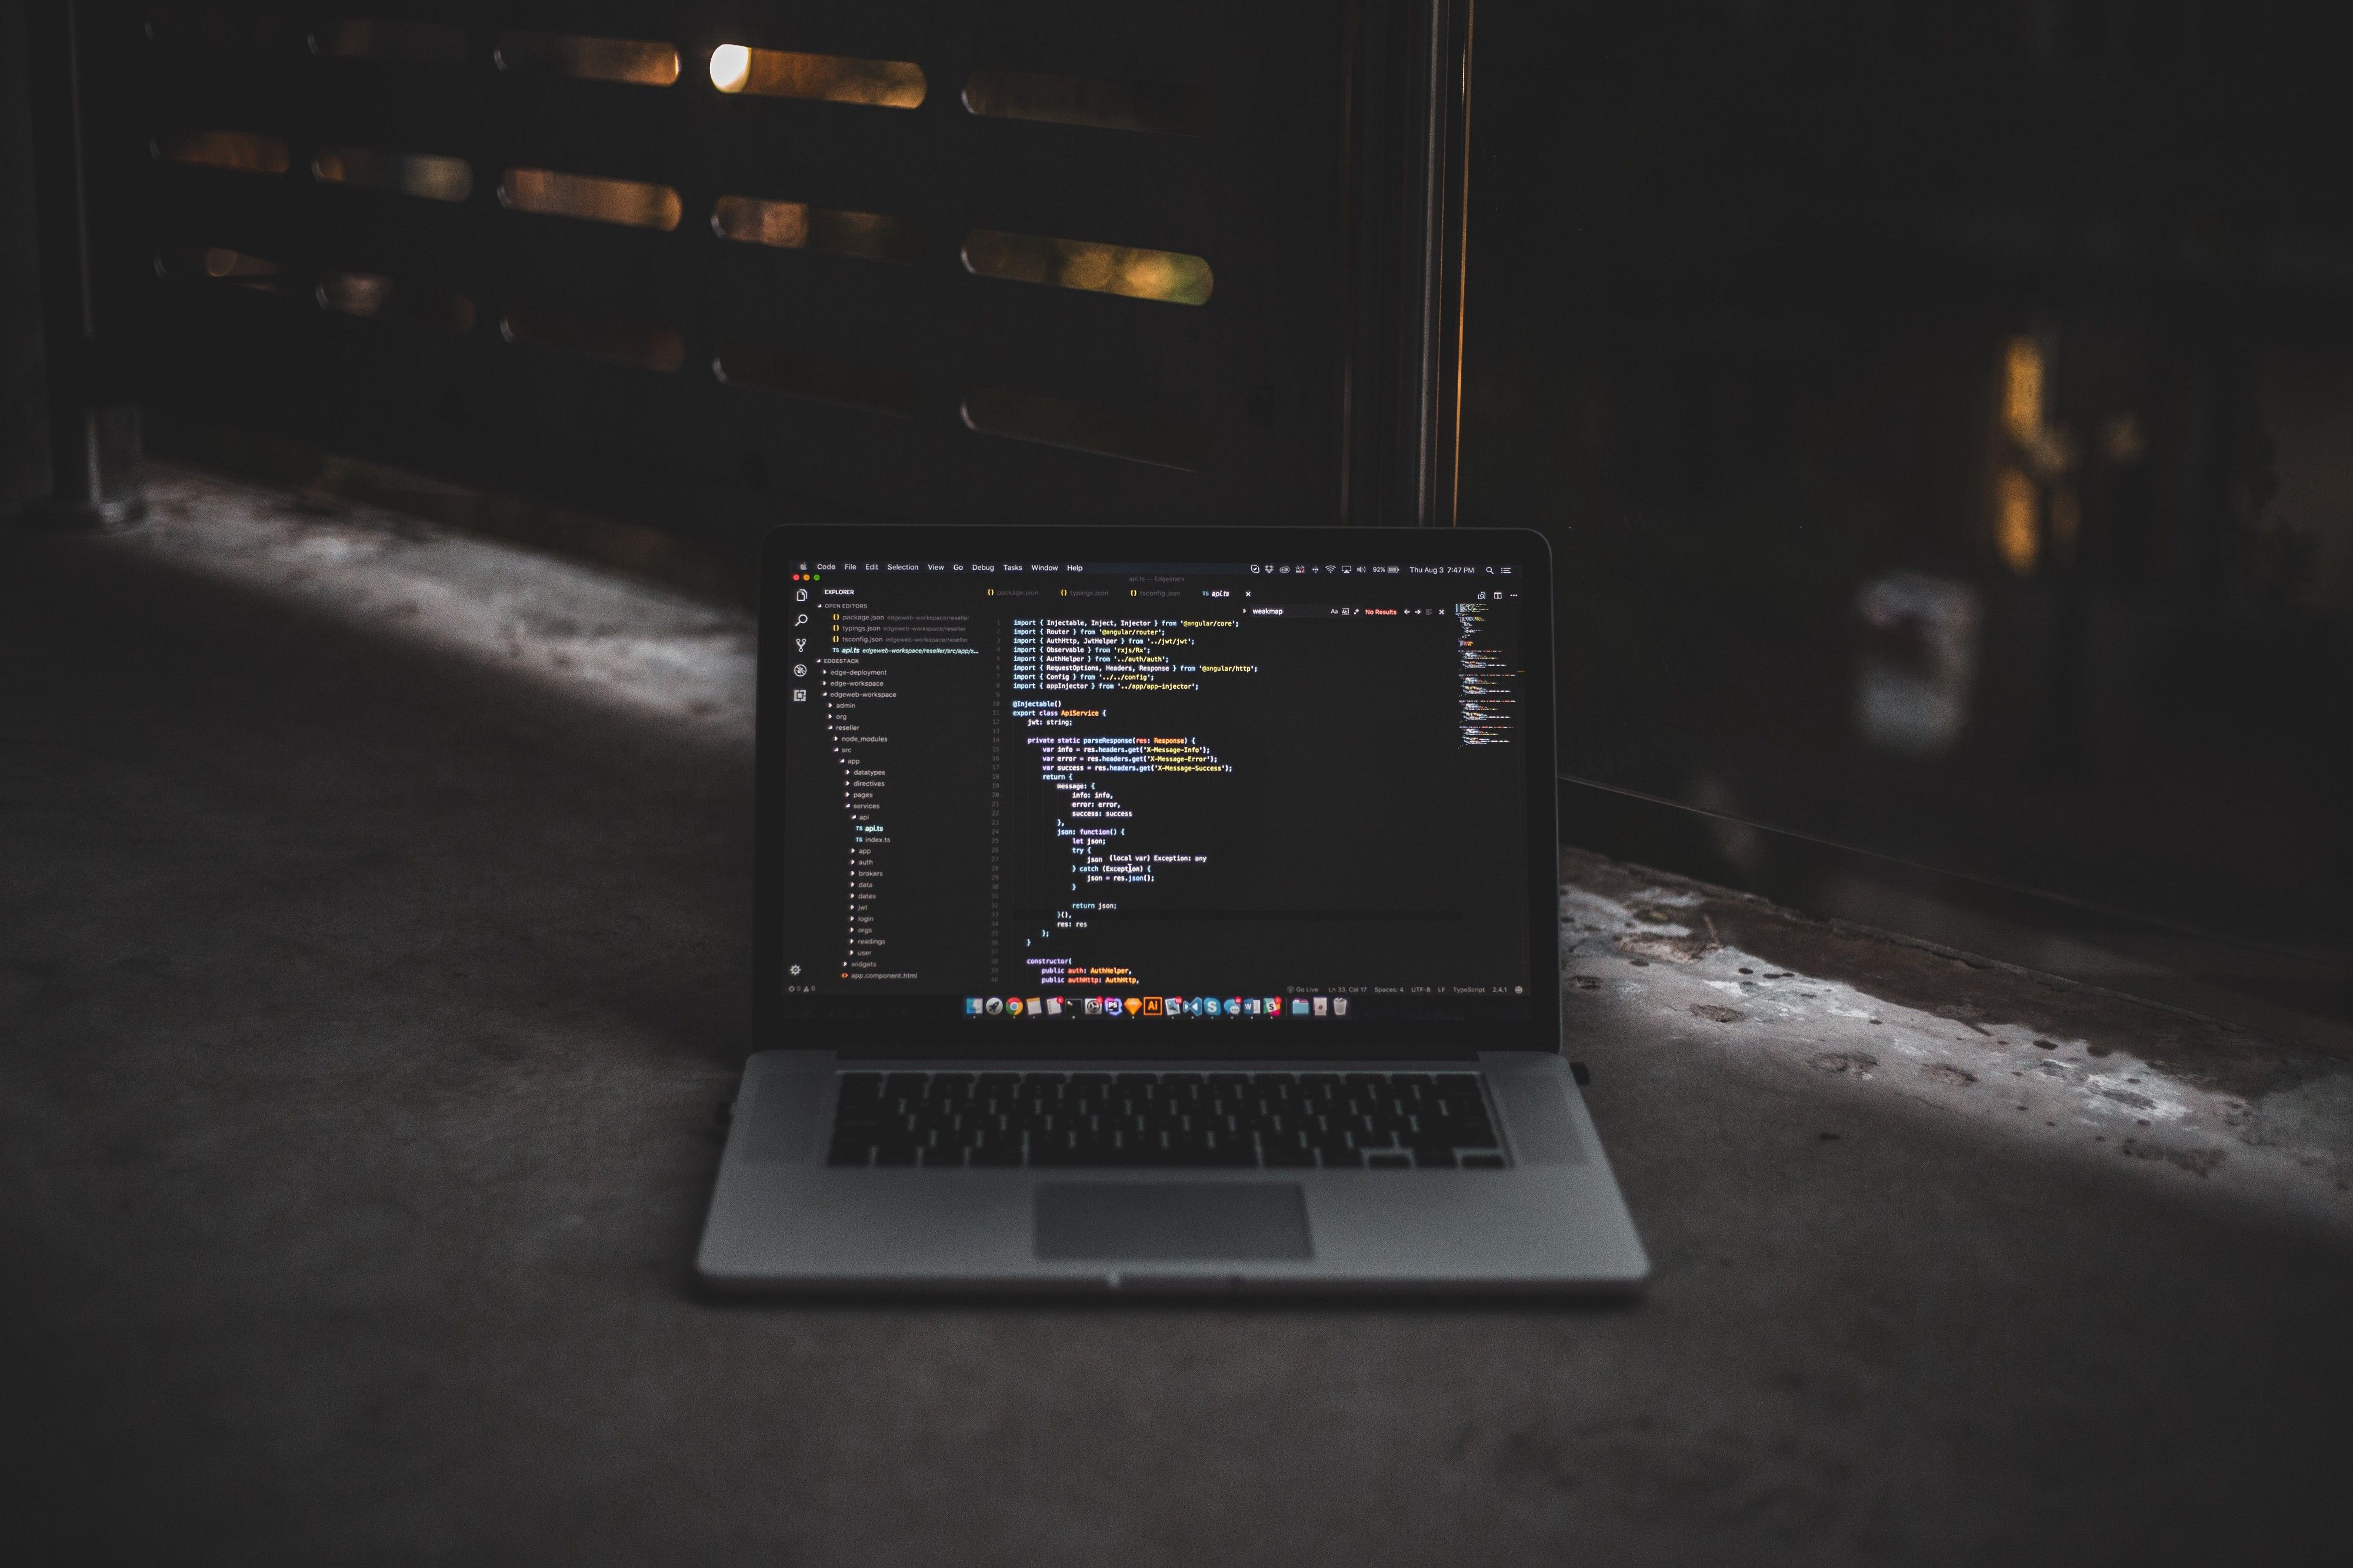 /15-tips-from-pro-developers-for-programming-beginners-5c1g31nf feature image